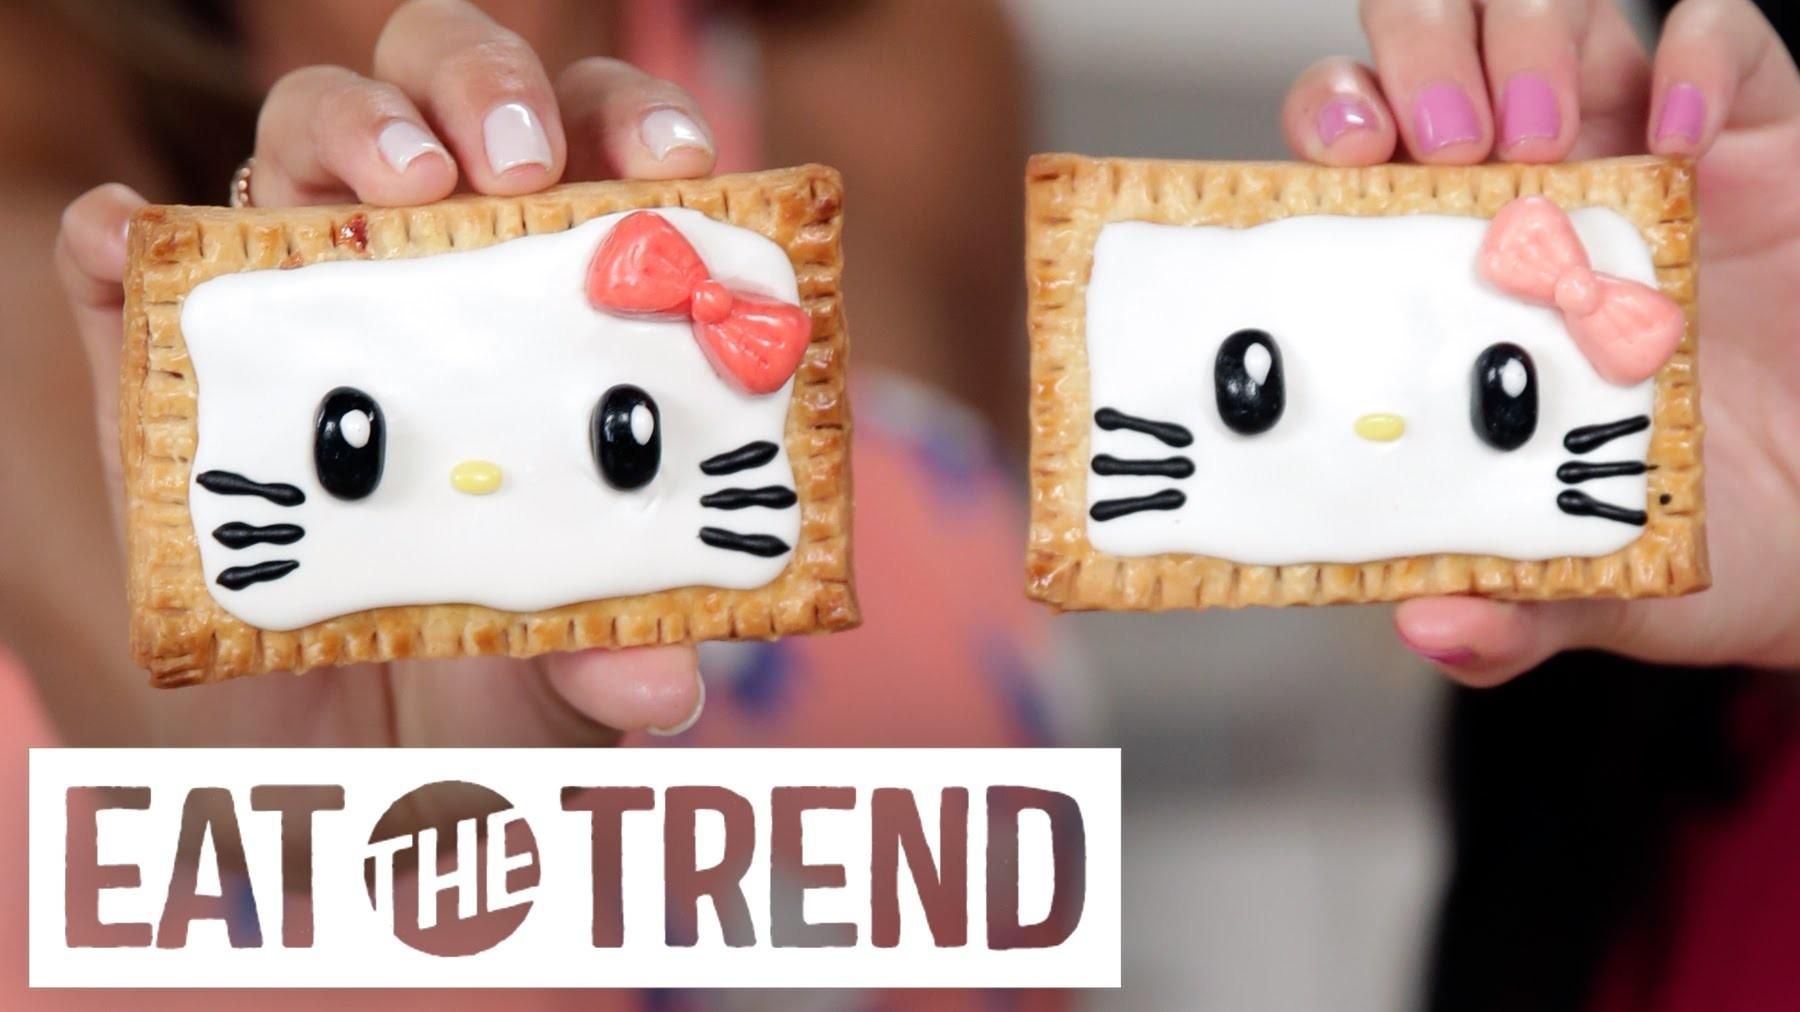 How to Make Hello Kitty Pop Tarts With Kawaiisweetworld | Eat the Trend